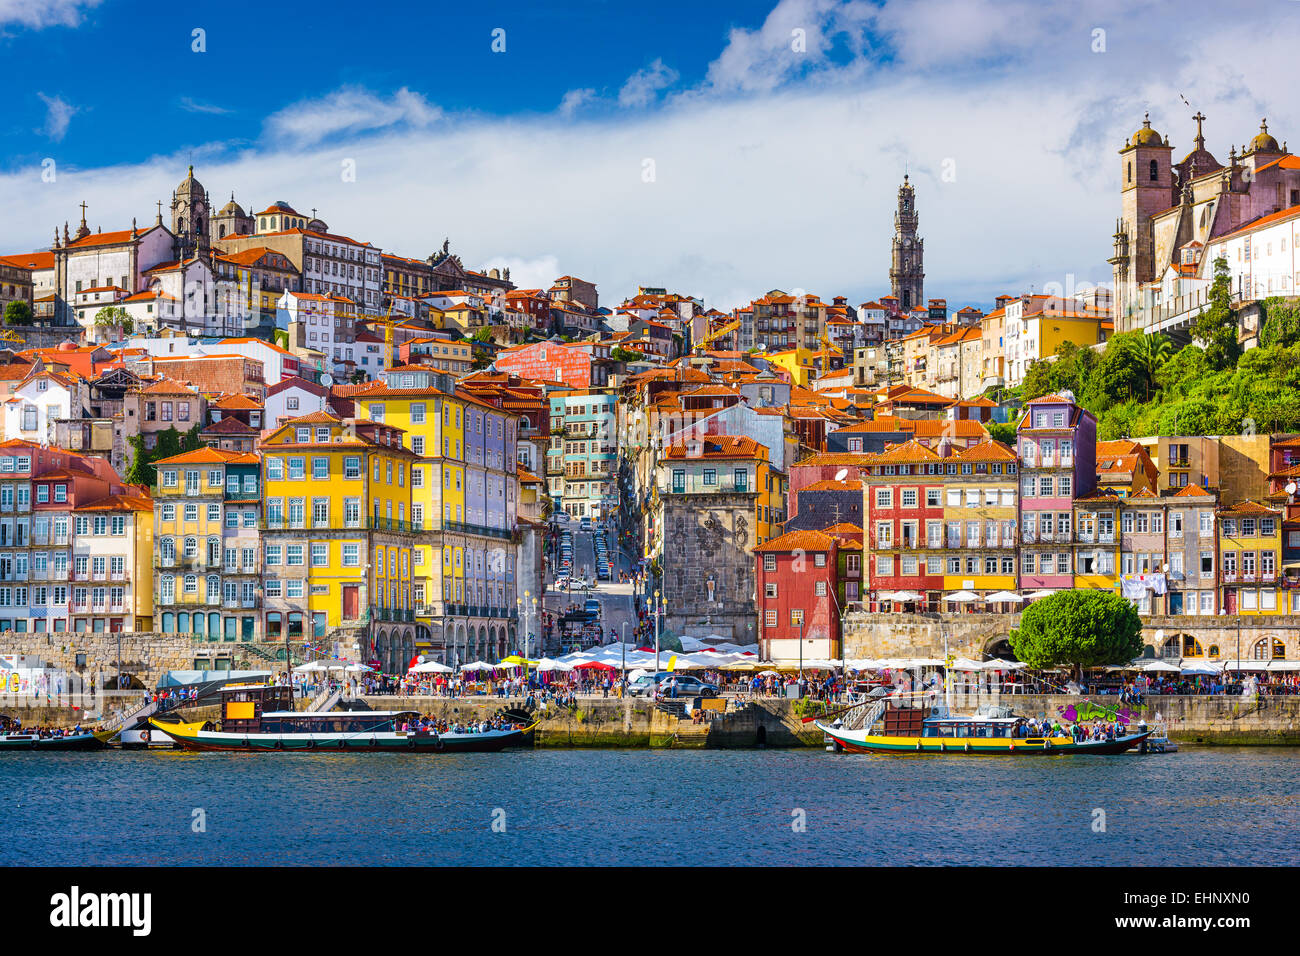 Porto, Portugal old town skyline from across the Douro River. - Stock Image